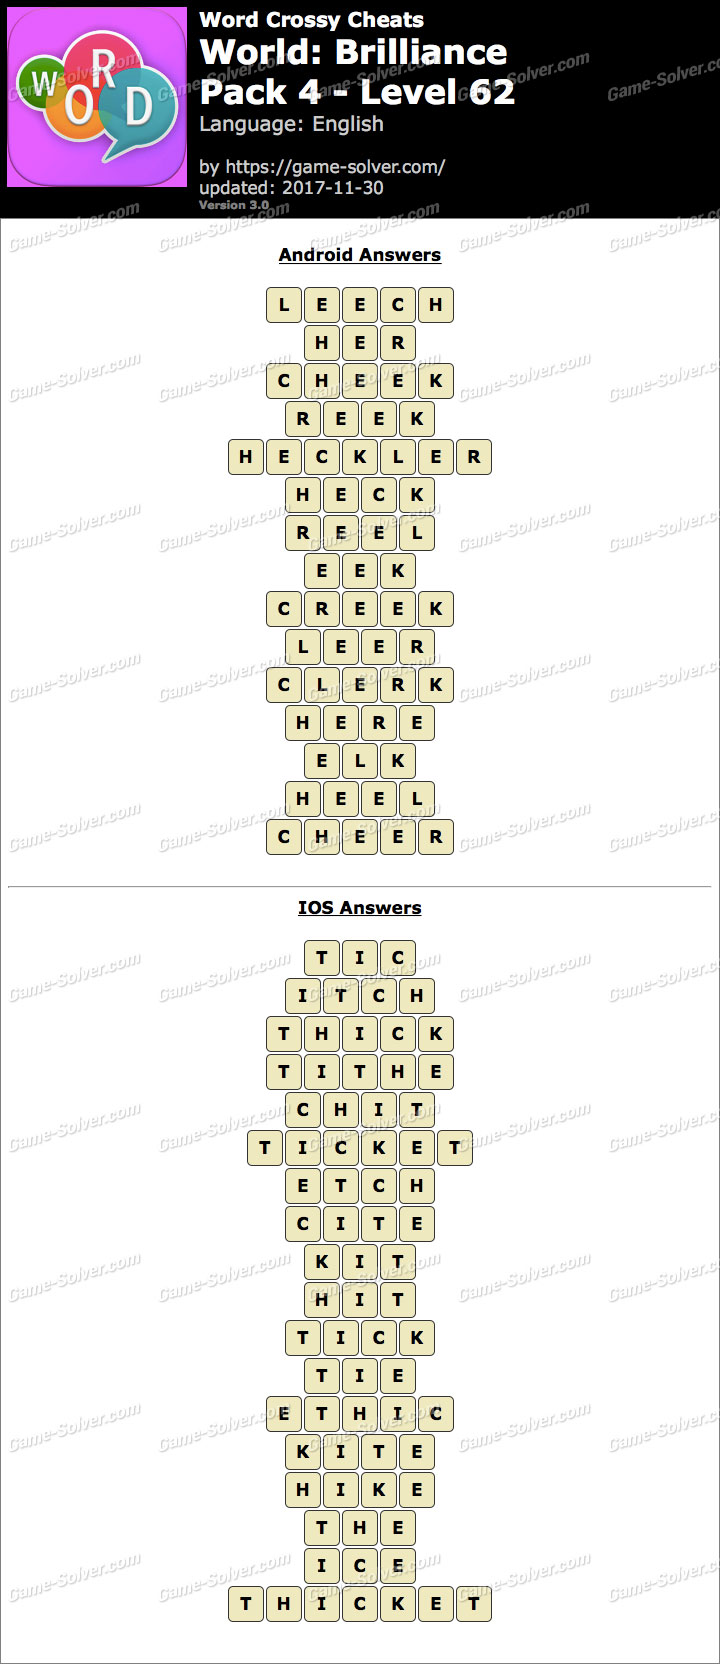 Word Crossy Brilliance Pack 4 Level 62 Answers